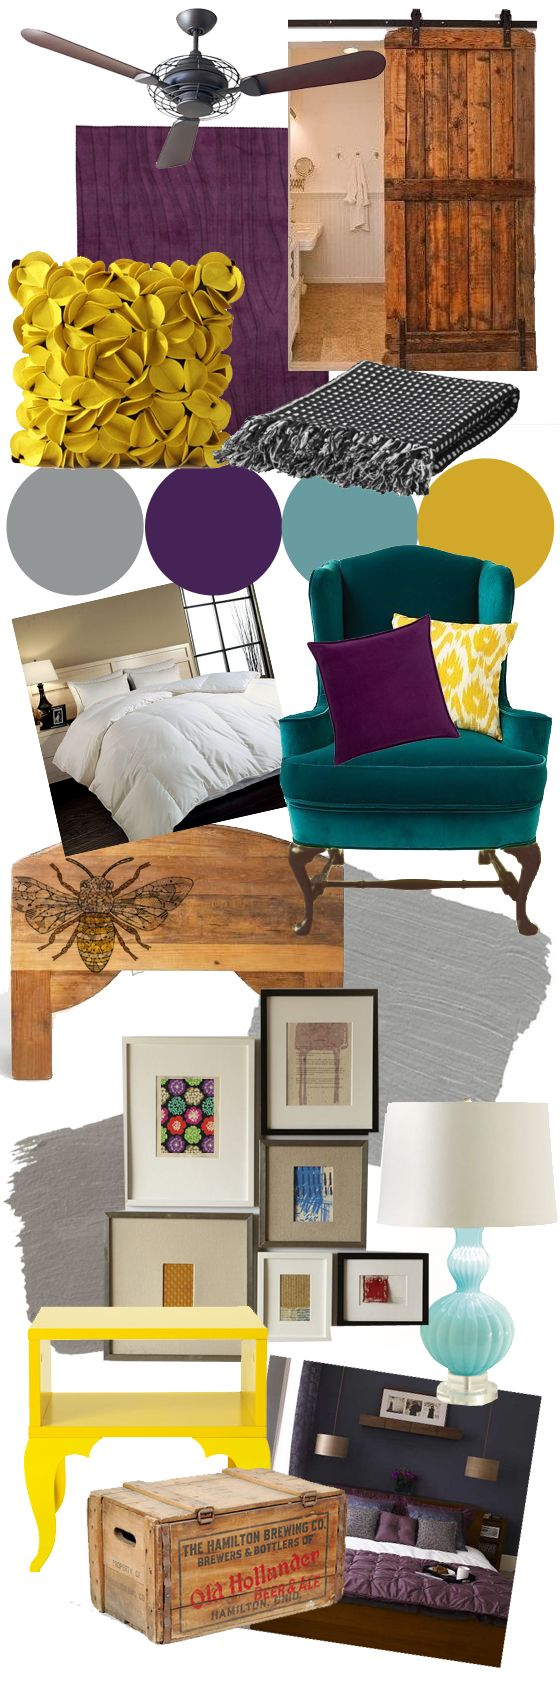 Best 25+ Teal yellow ideas on Pinterest | Teal yellow grey, Yellow ...